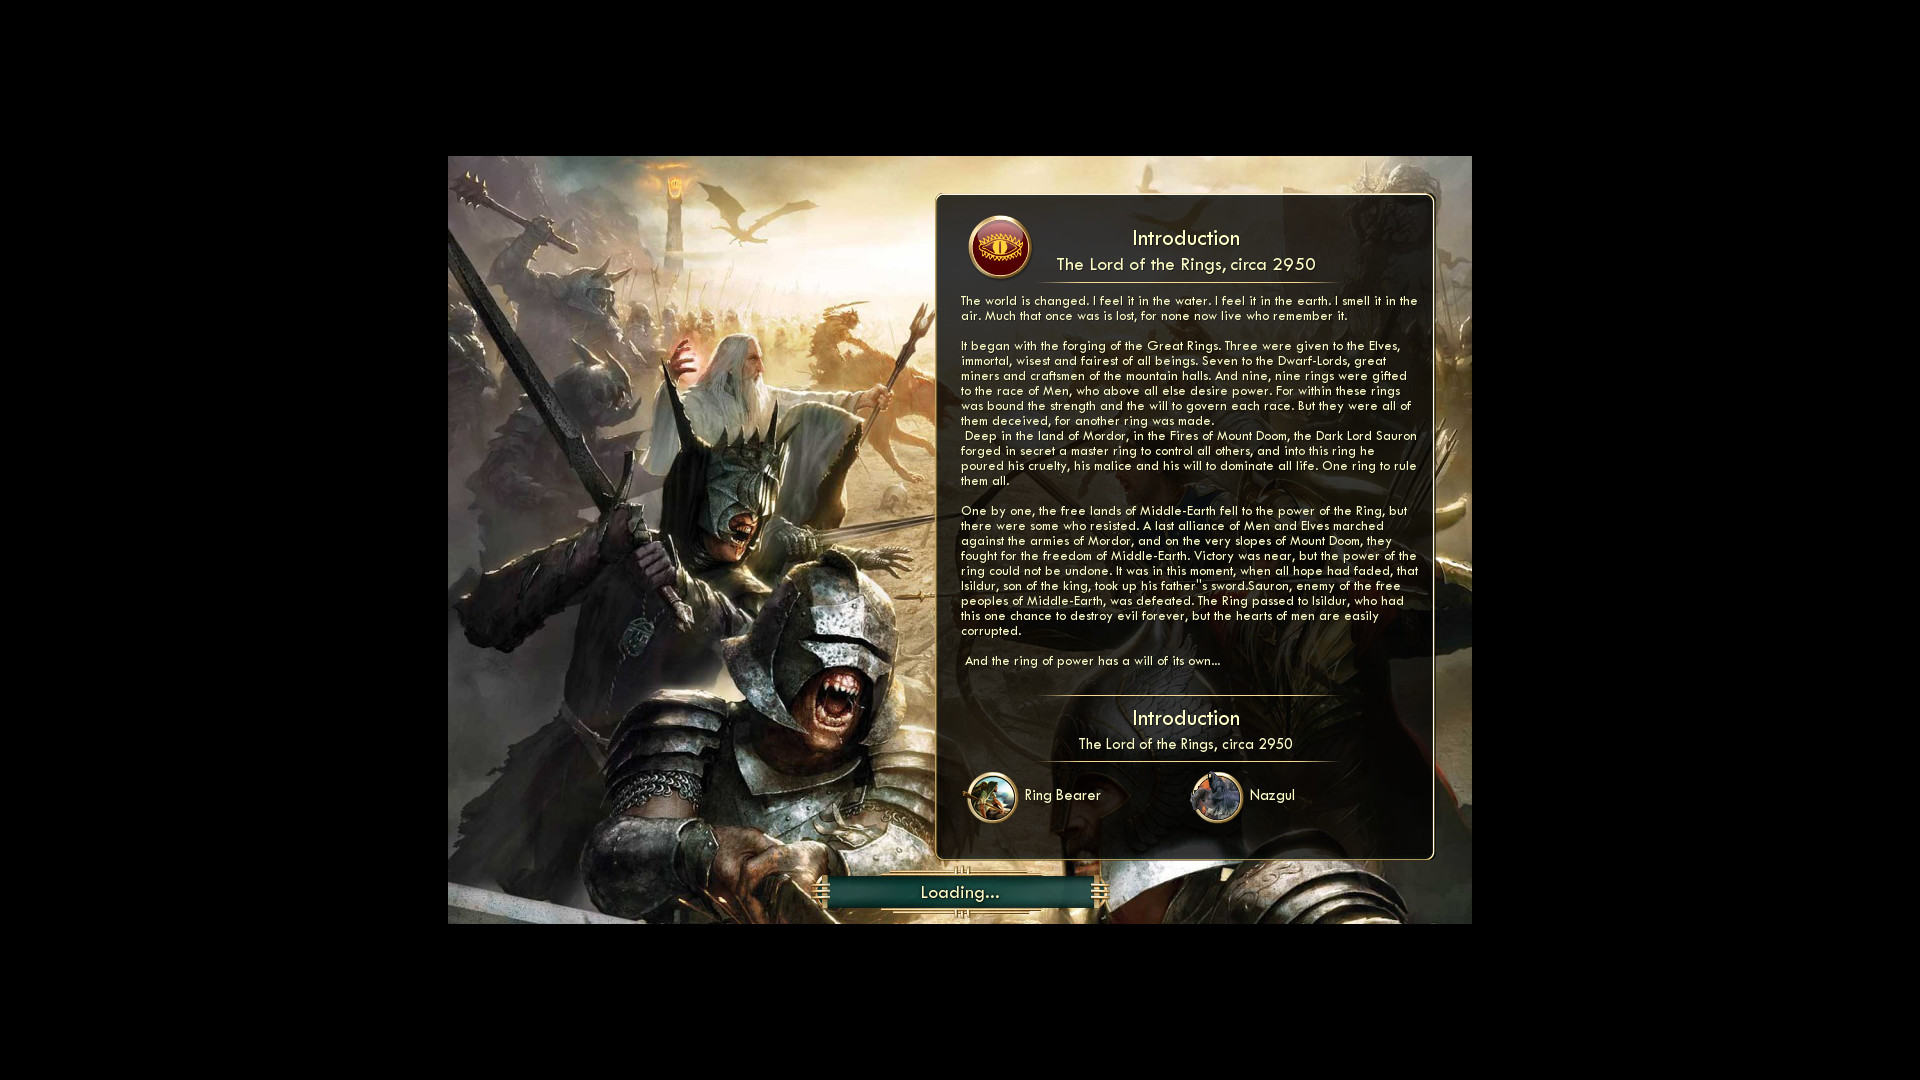 Lord of the Rings (Civ5) | Civilization Wiki | FANDOM powered by Wikia